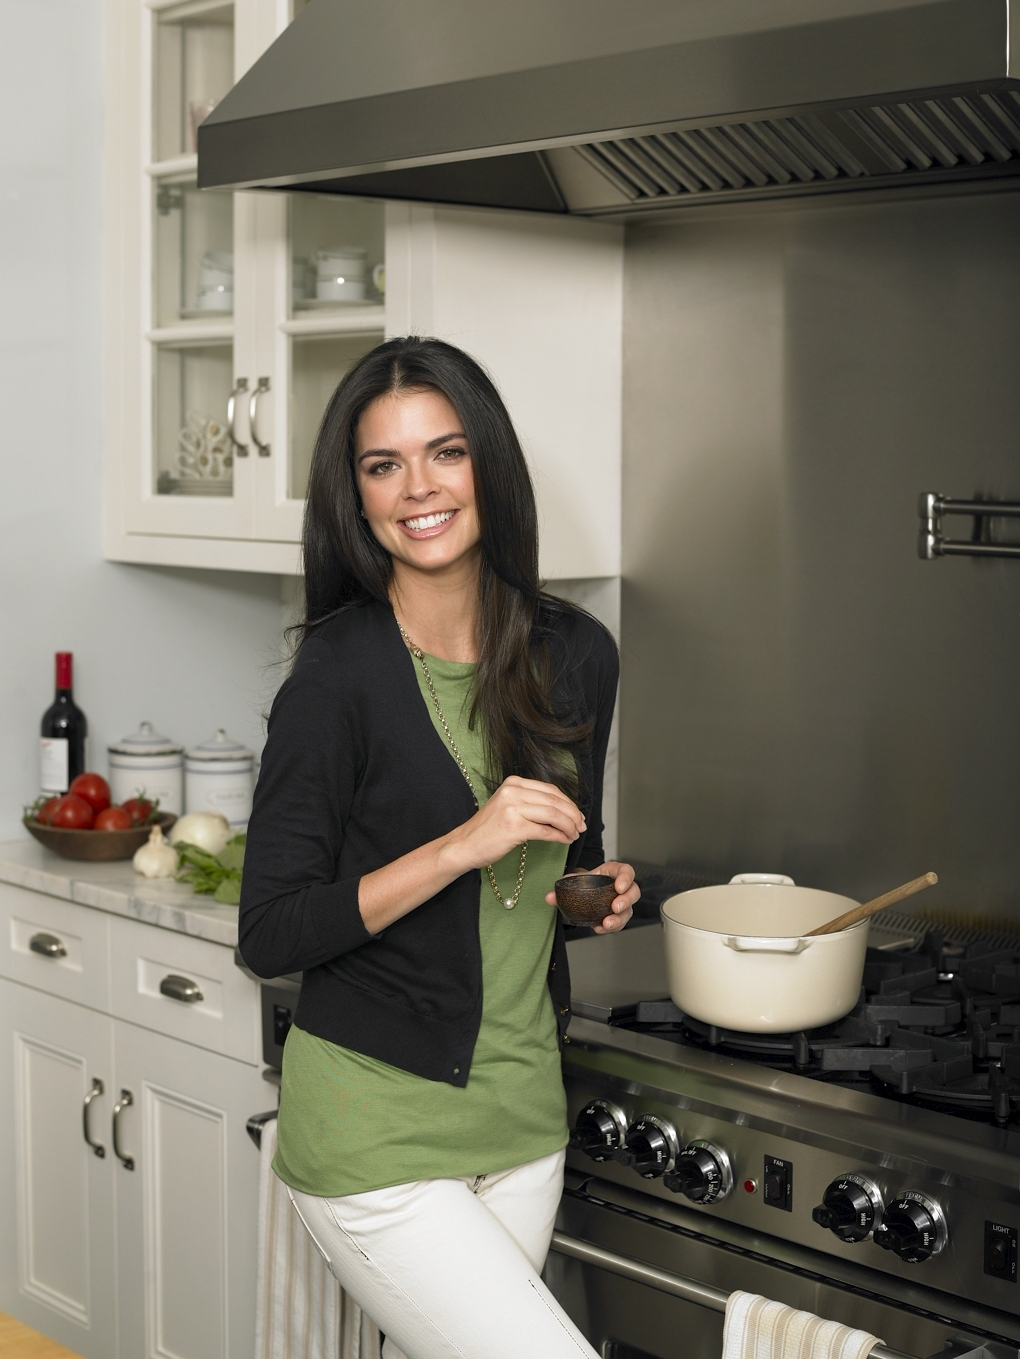 Lee Kitchen: Make Your Thanksgiving Easy With P&G And Katie Lee